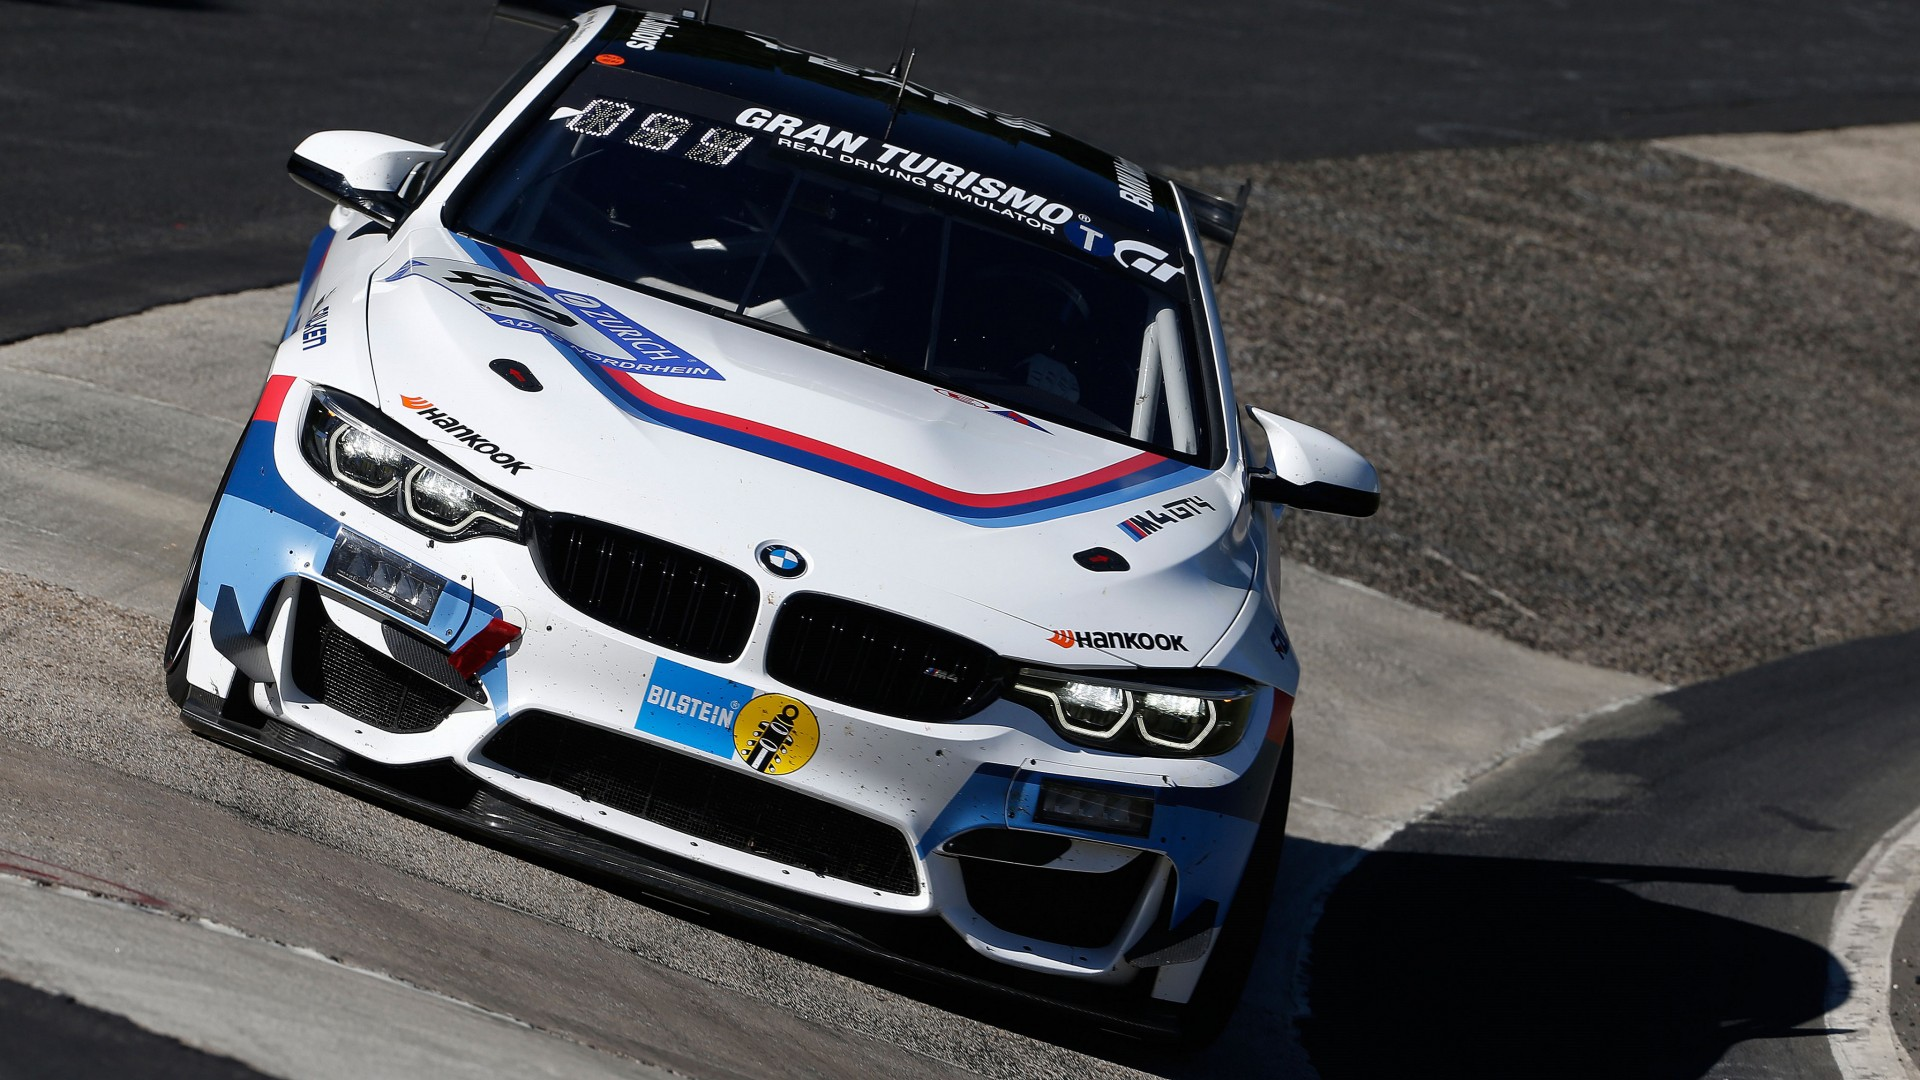 bmw m4 gt4 racing car 4k wallpaper